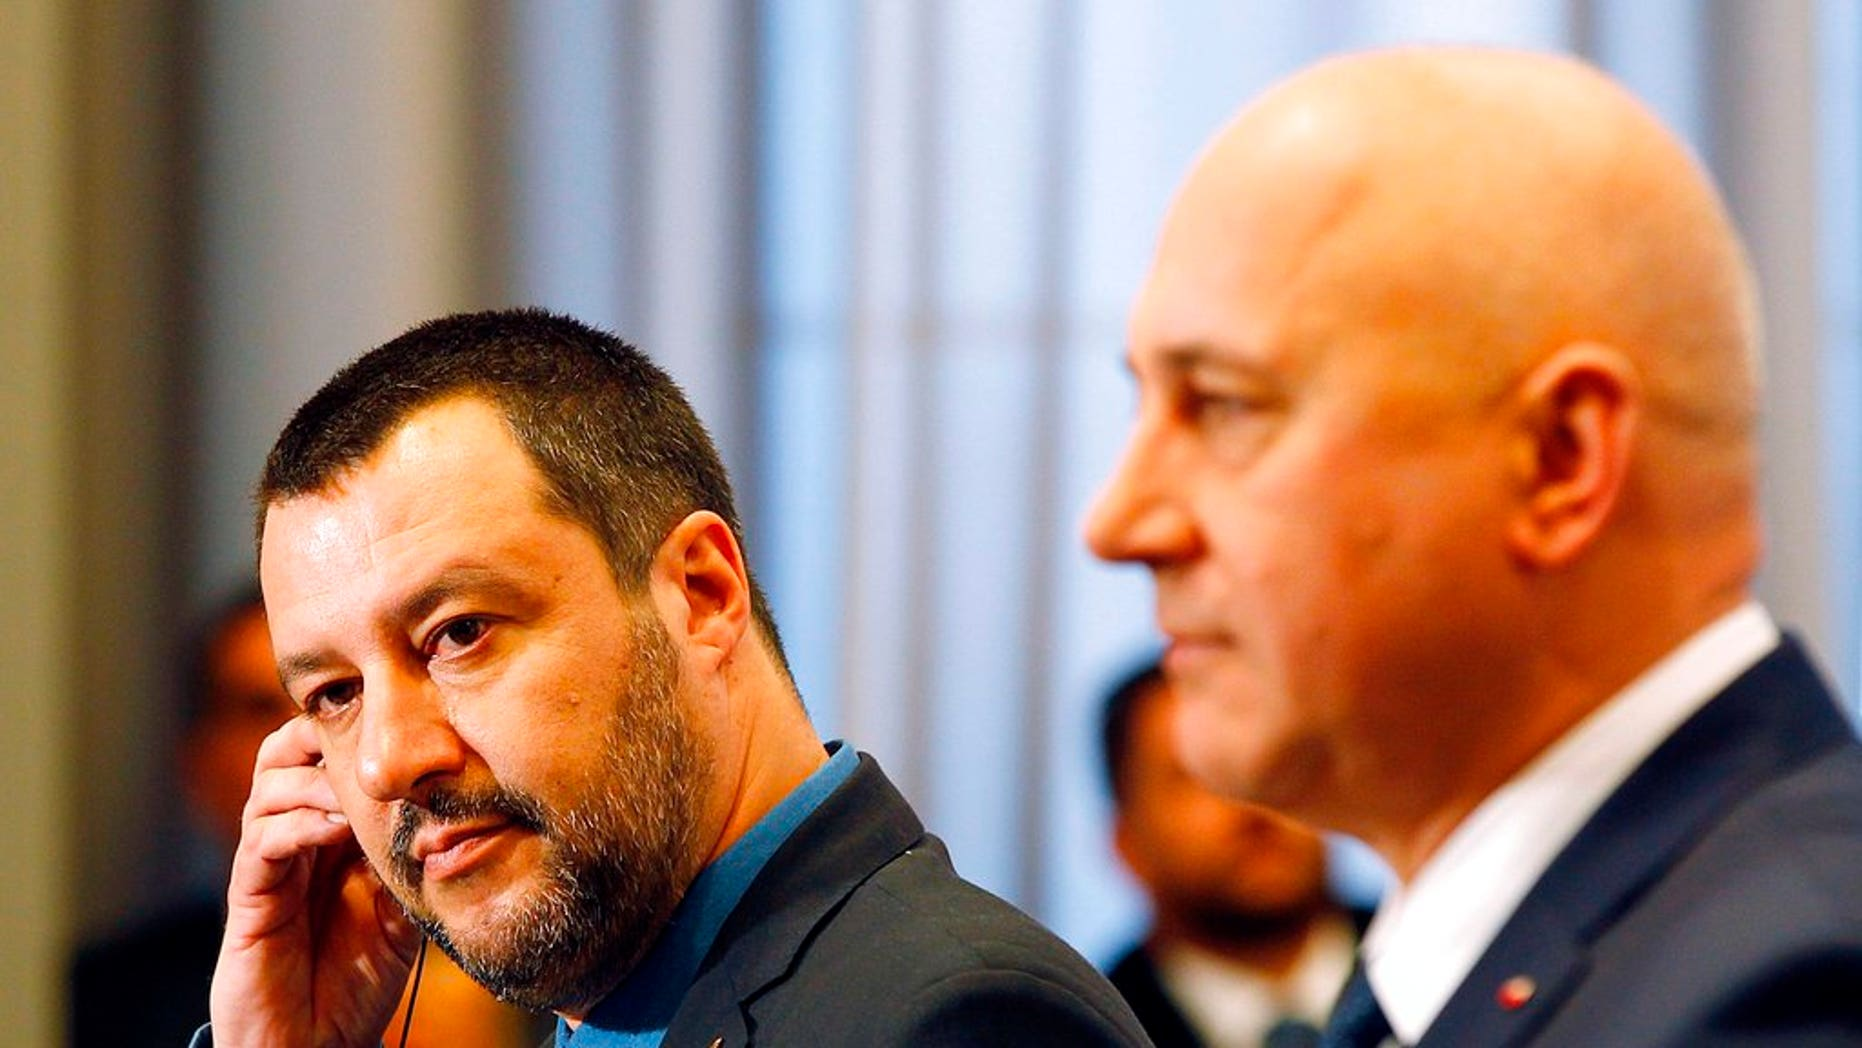 Italian Interior Minister Matteo Salvini, left, and his Polish counterpart Joachim Brudzinski, right, address the media following their talks in Warsaw, Poland, Wednesday, Jan. 9, 2019.